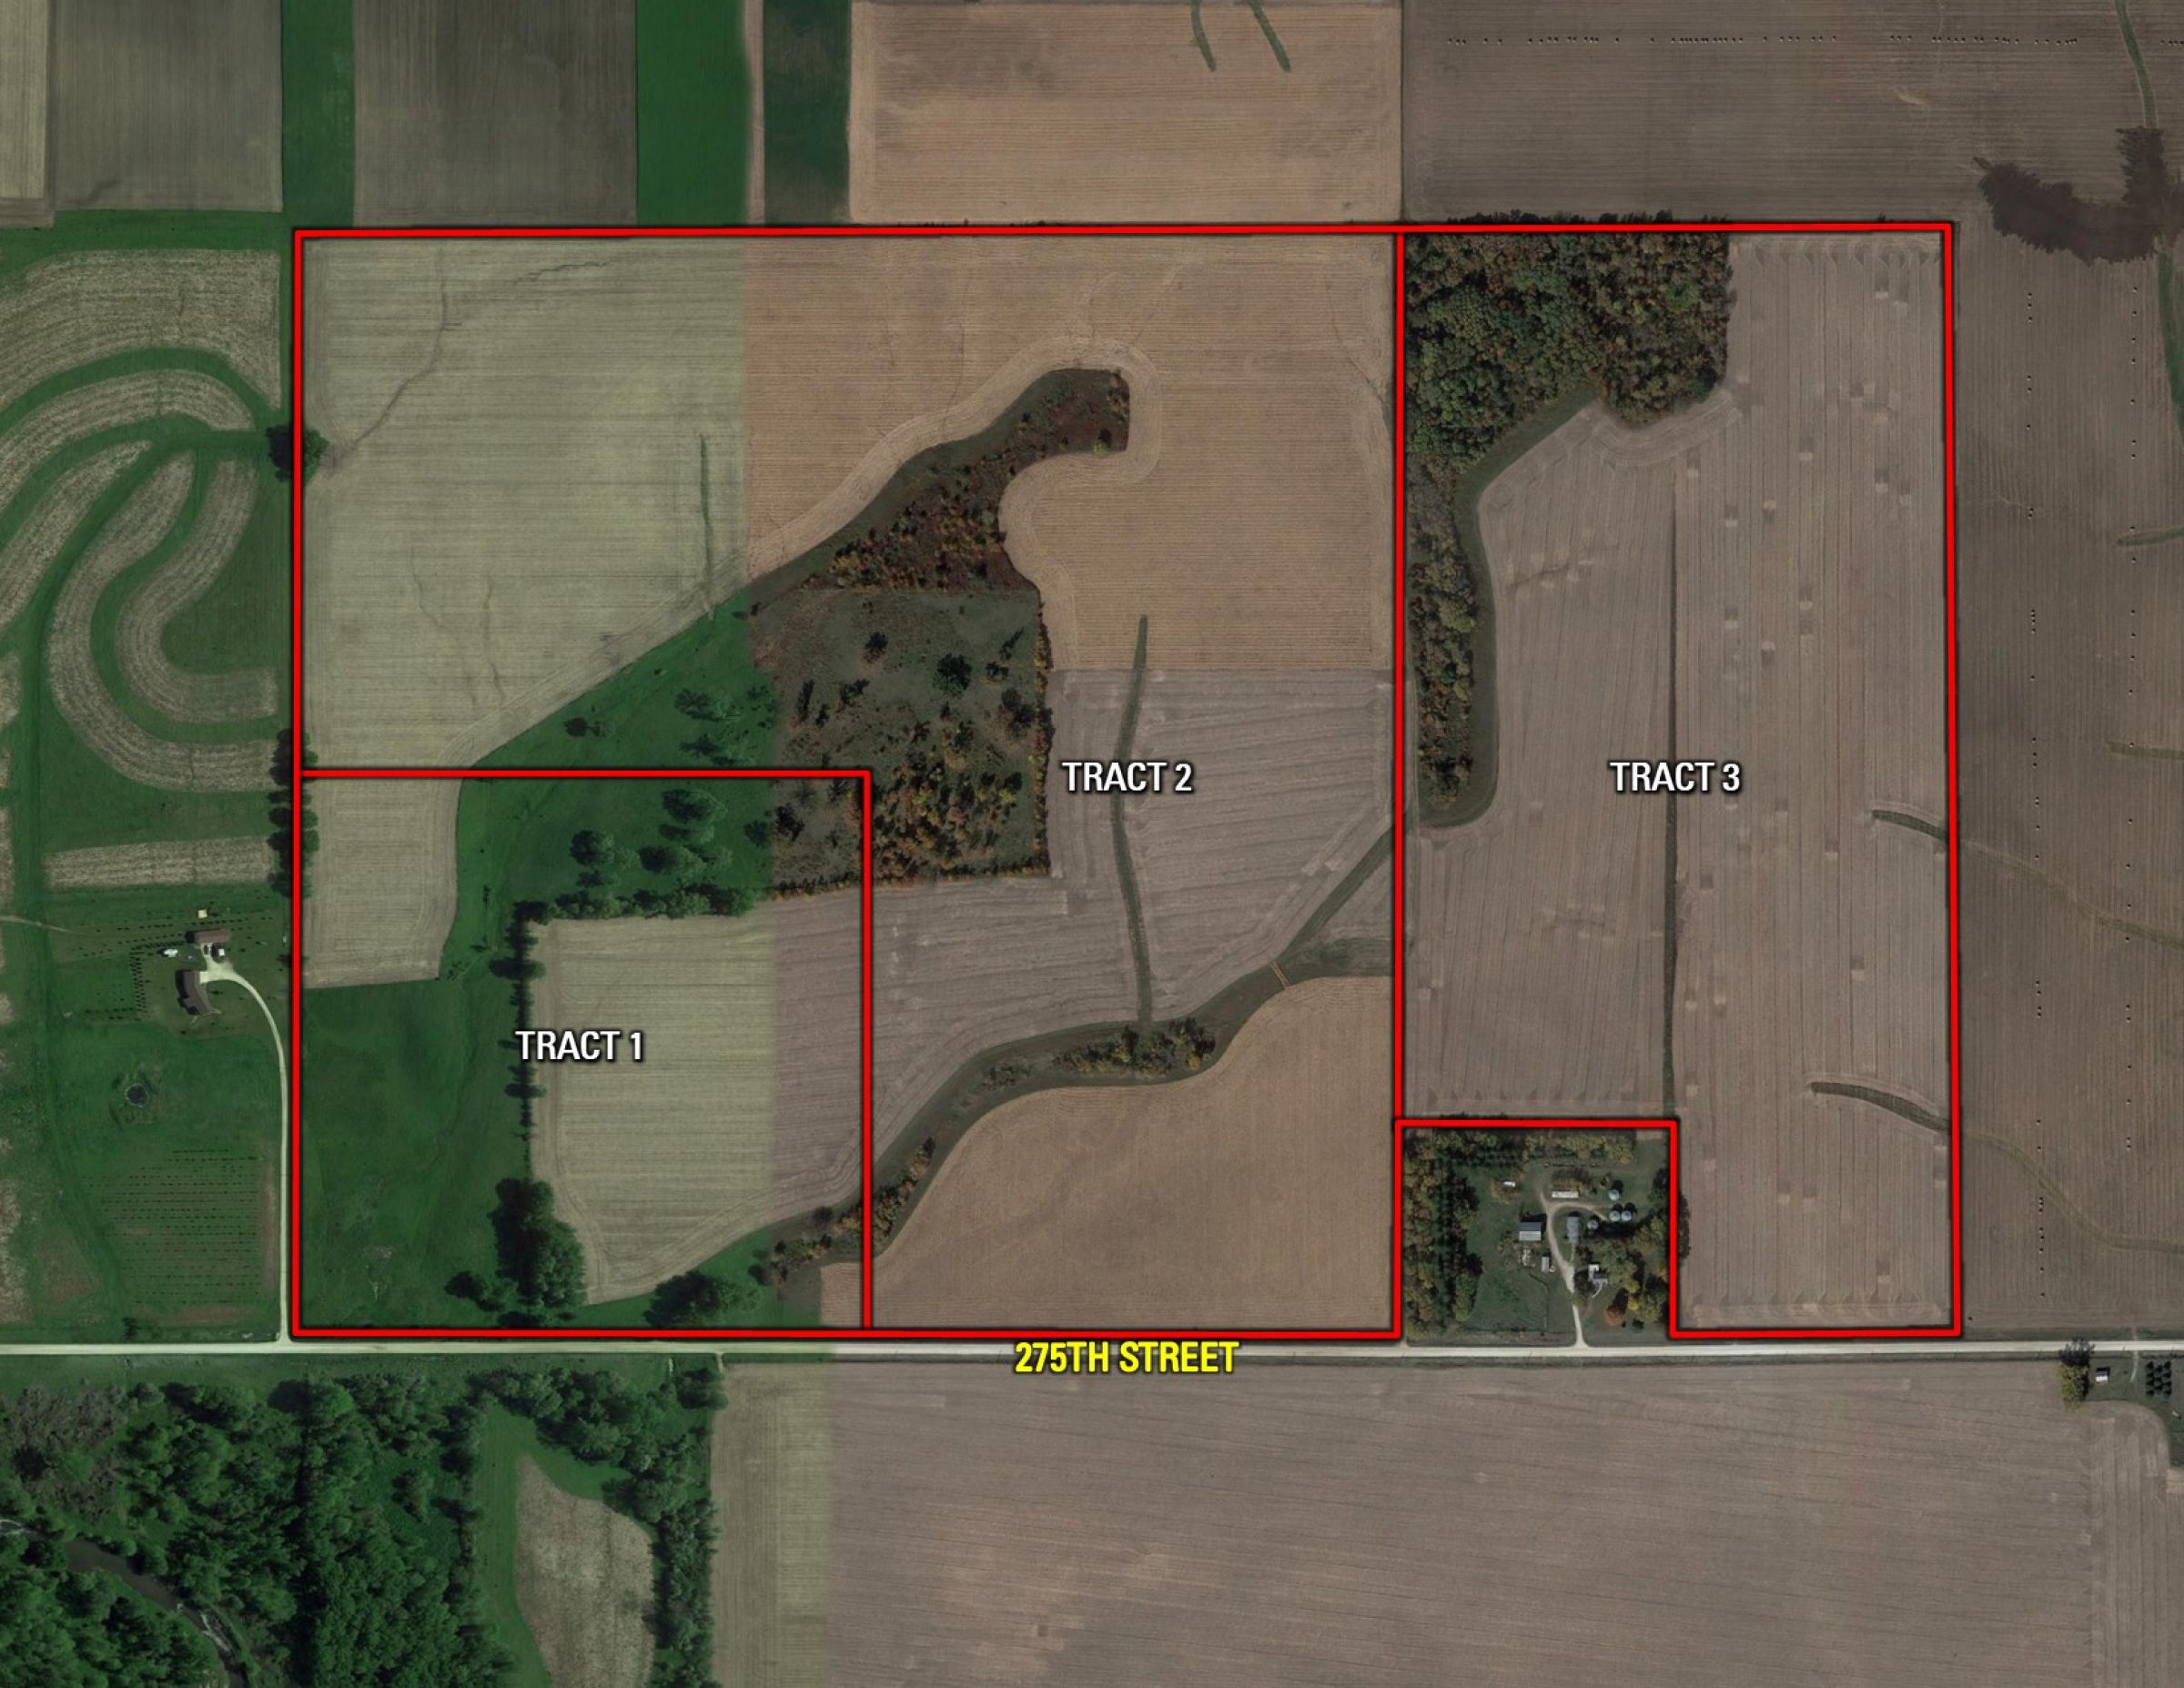 auctions-land-fayette-county-iowa-233-acres-listing-number-15645-0-2021-07-21-143816.jpg